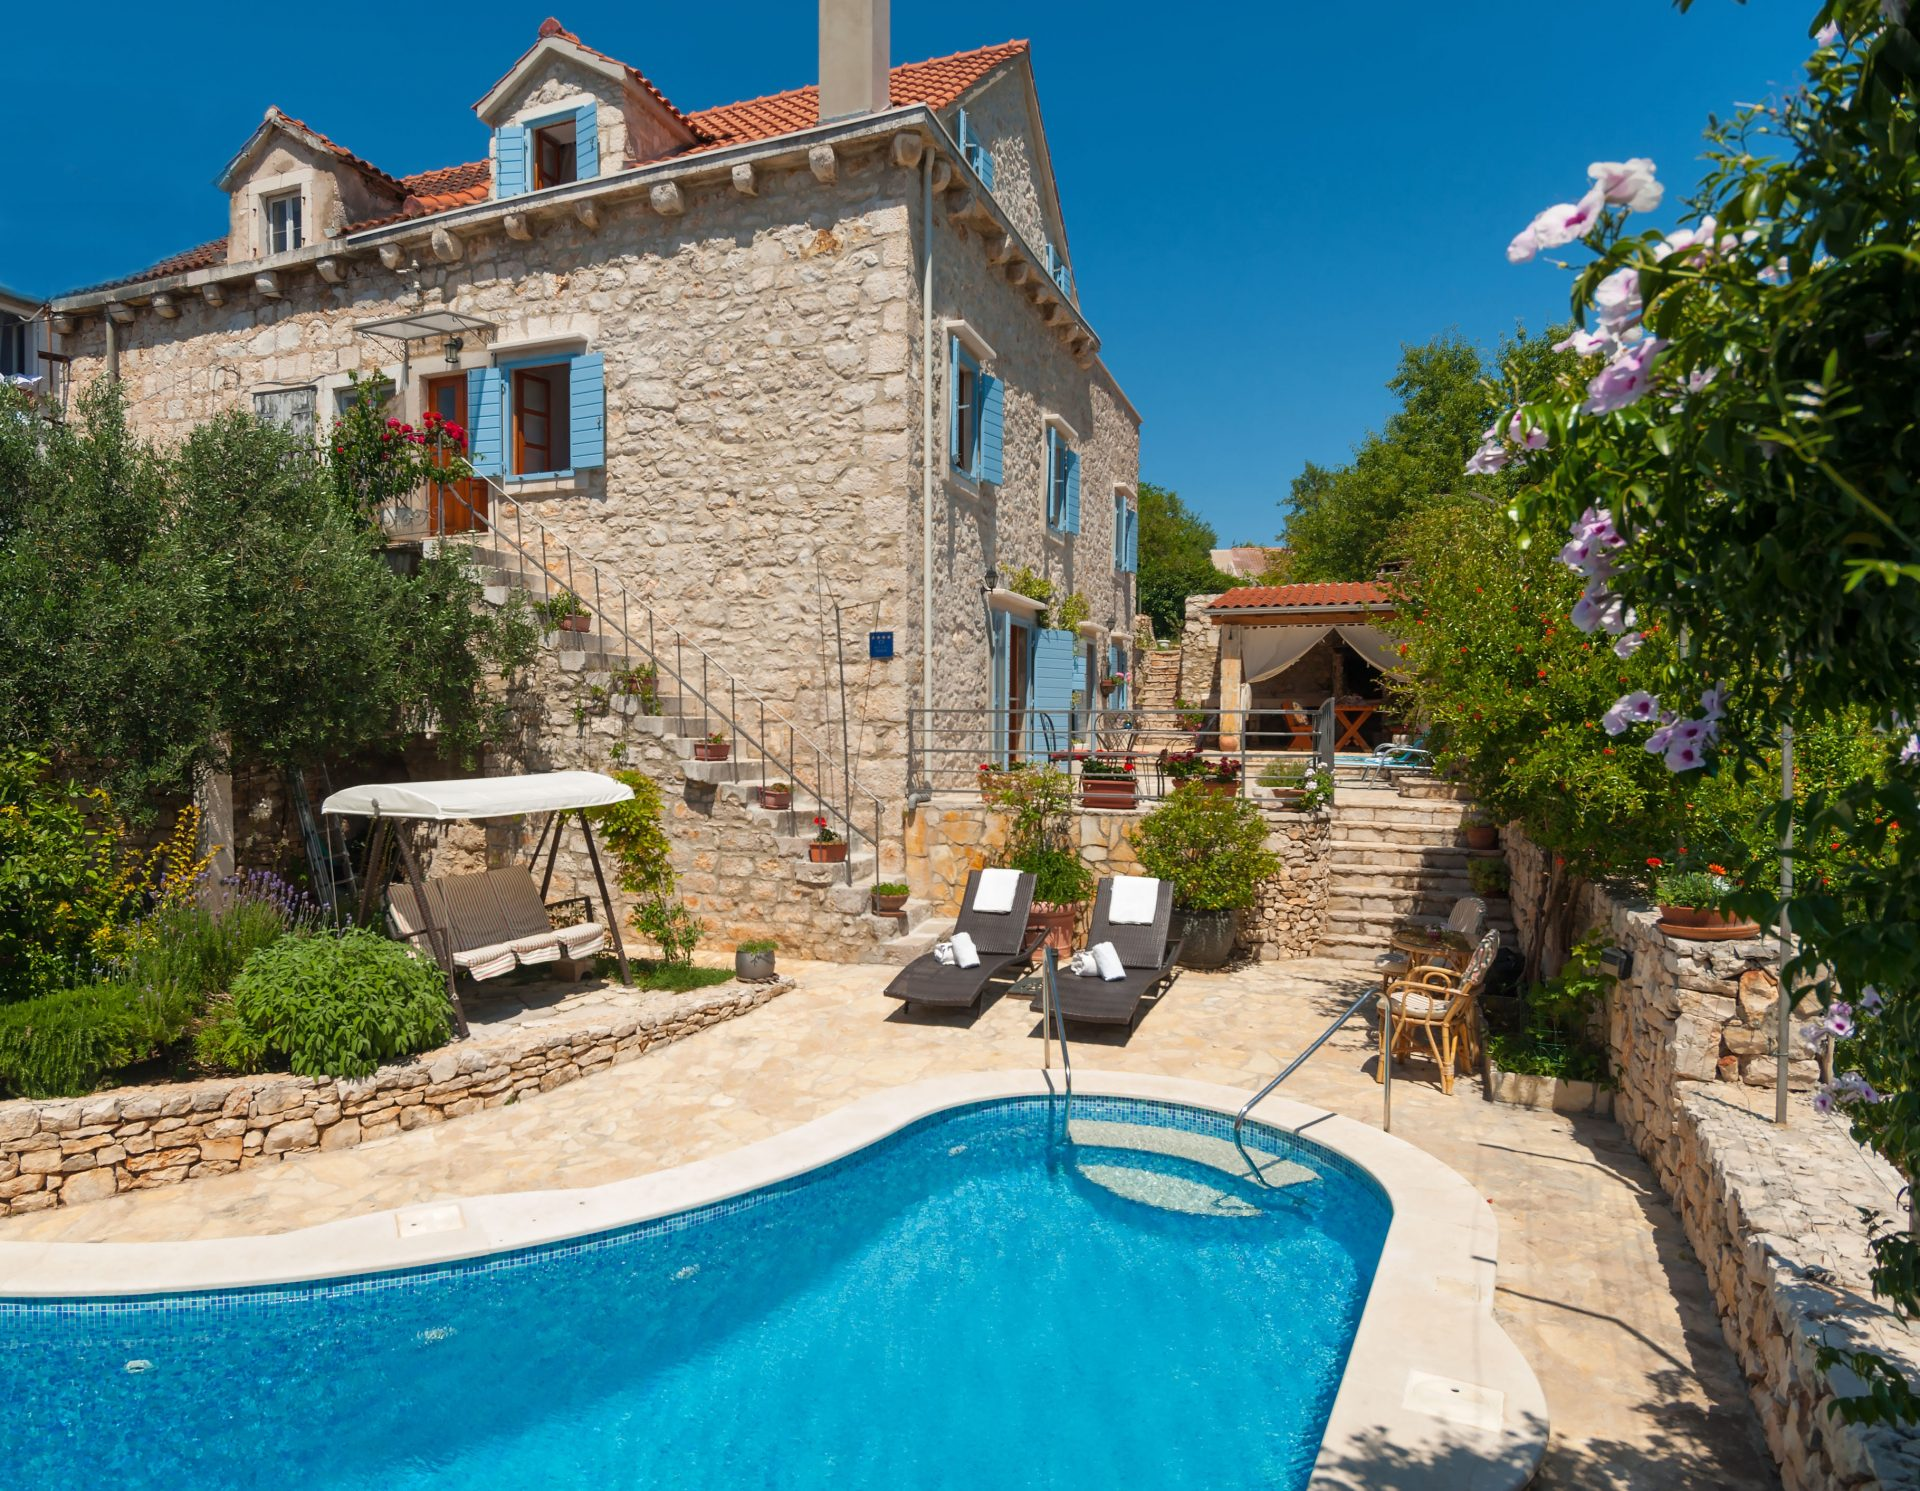 Luxury Villas in Croatia by Orvas Villas